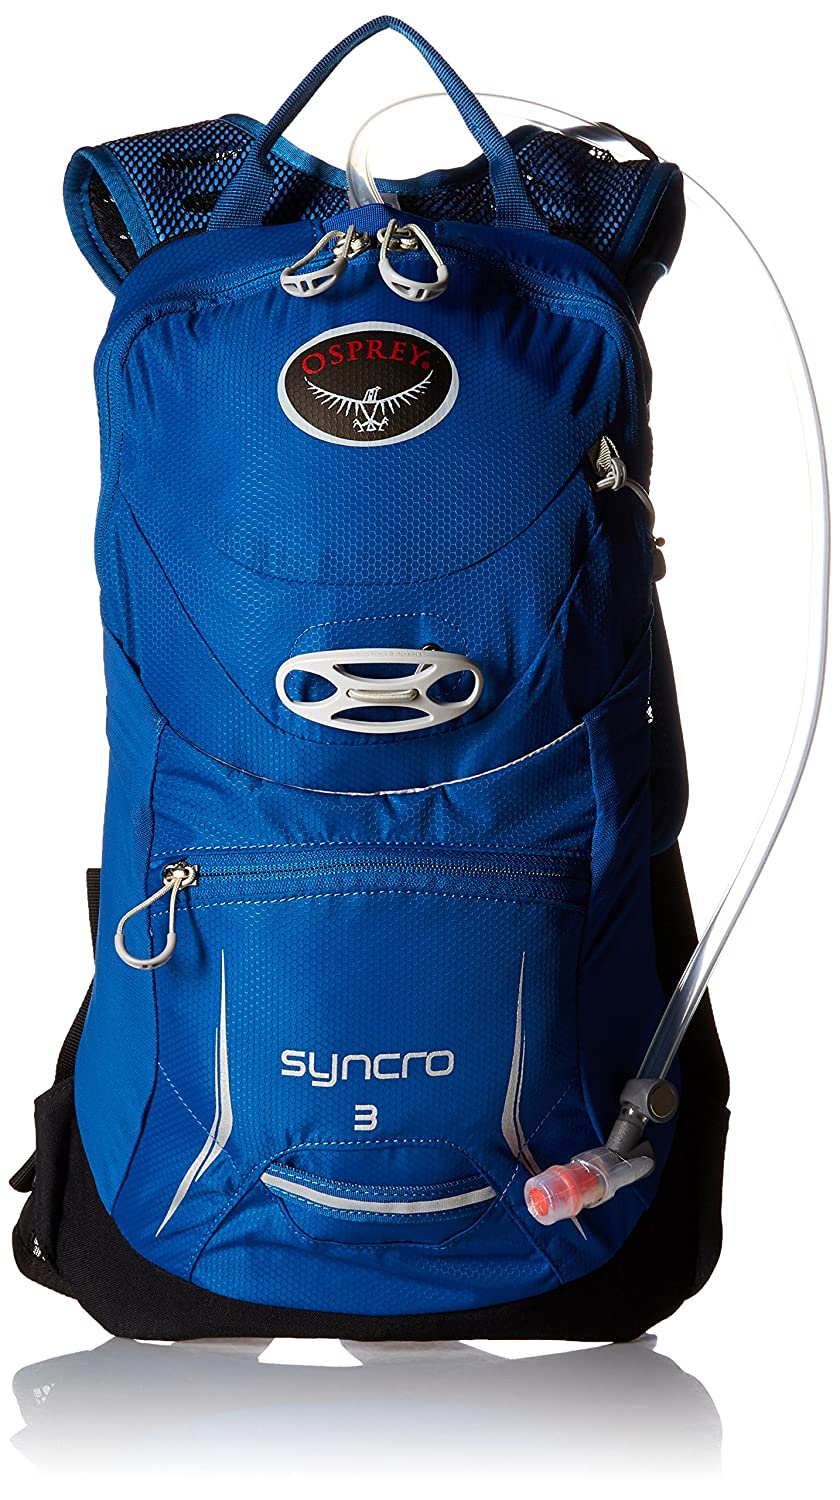 Osprey Packs Syncro 3 Hydration Pack